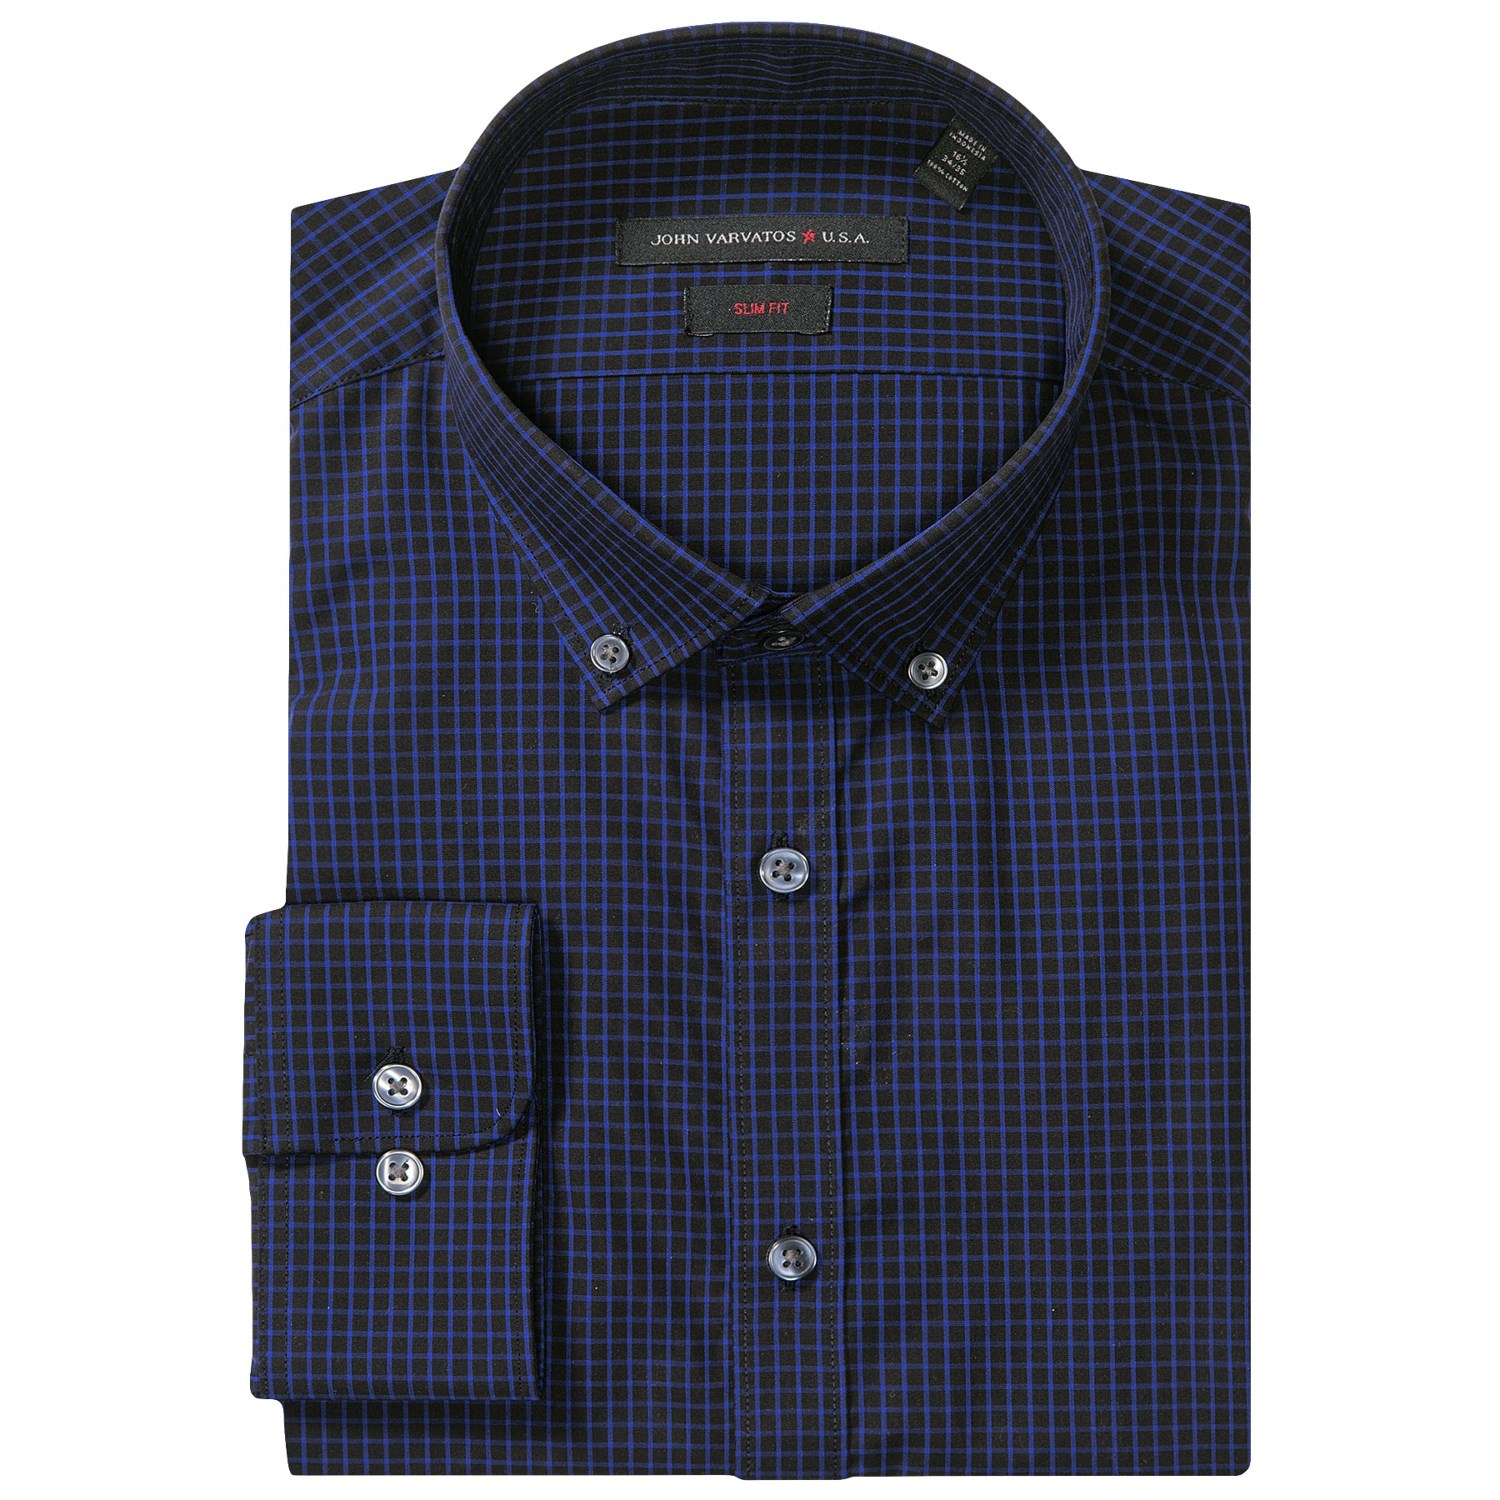 Ink Blue Color Dress Slim fit check dress shirt